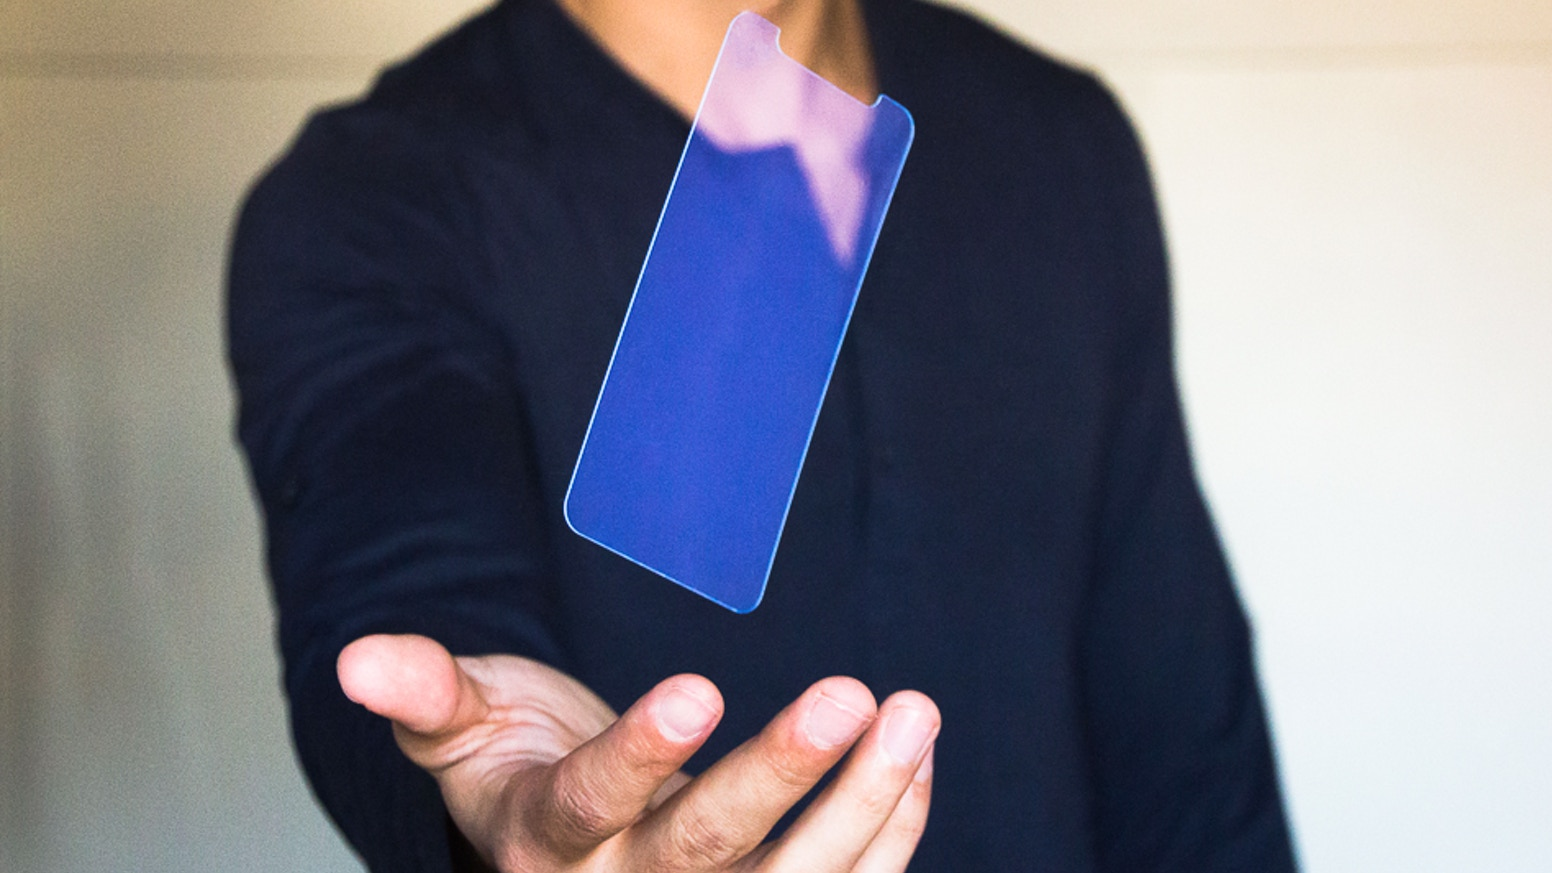 A NanoTech TGlass Blue Light Screen Protector That Protects Your Eyes & Device Like Never Before.